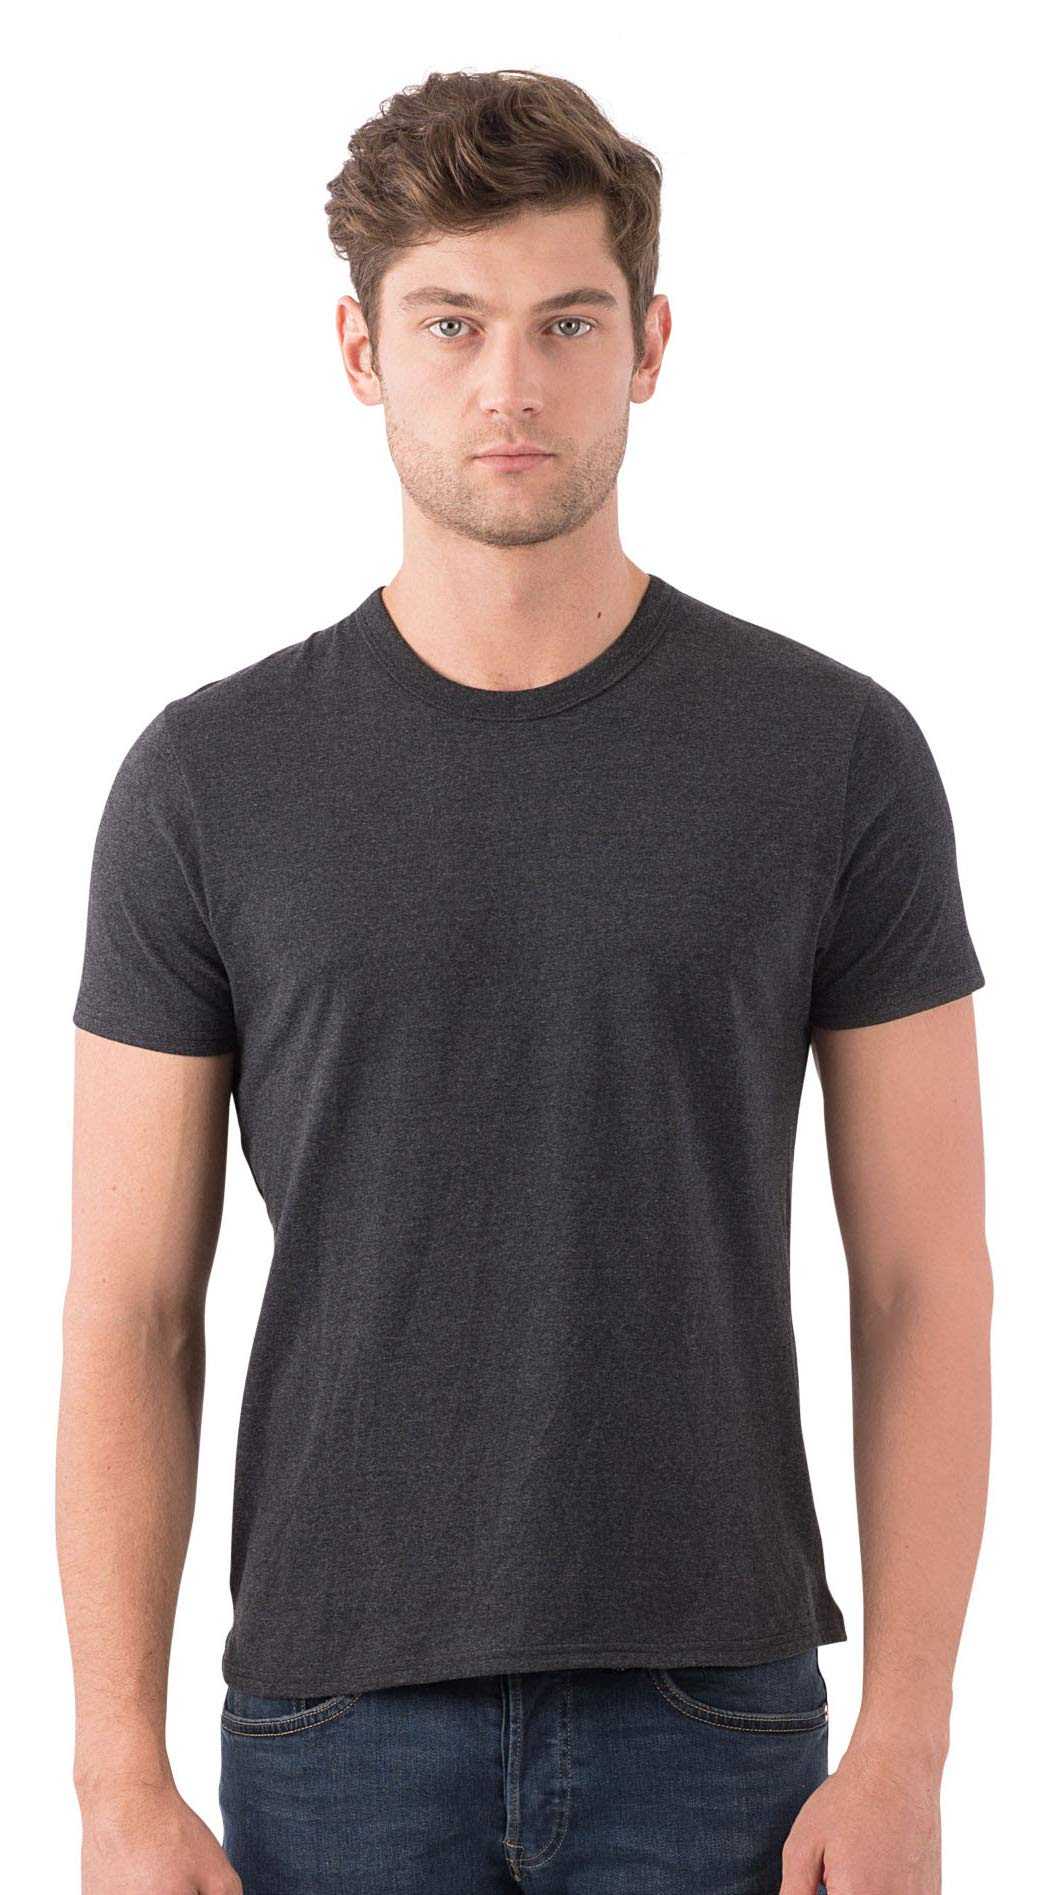 SOIZZI Fashion Men's 100% Organic Cotton Basic Crew Neck Short Sleeve Tee Dark Heather Grey-XL